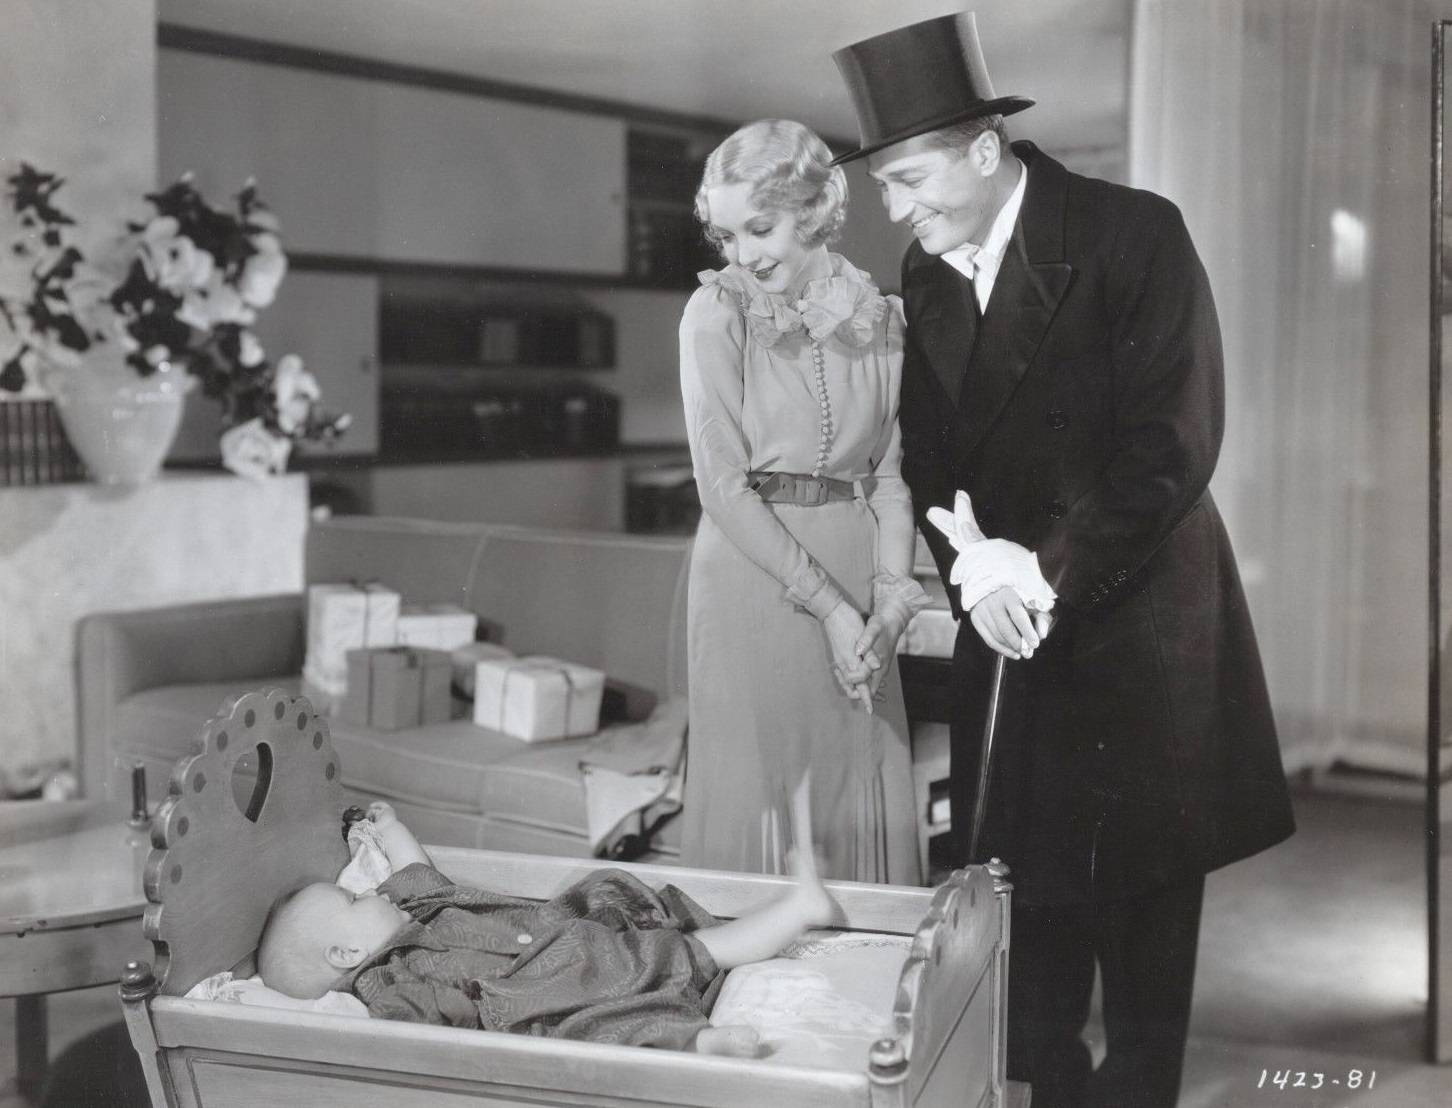 Maurice Chevalier, Baby LeRoy, and Helen Twelvetrees in A Bedtime Story (1933)